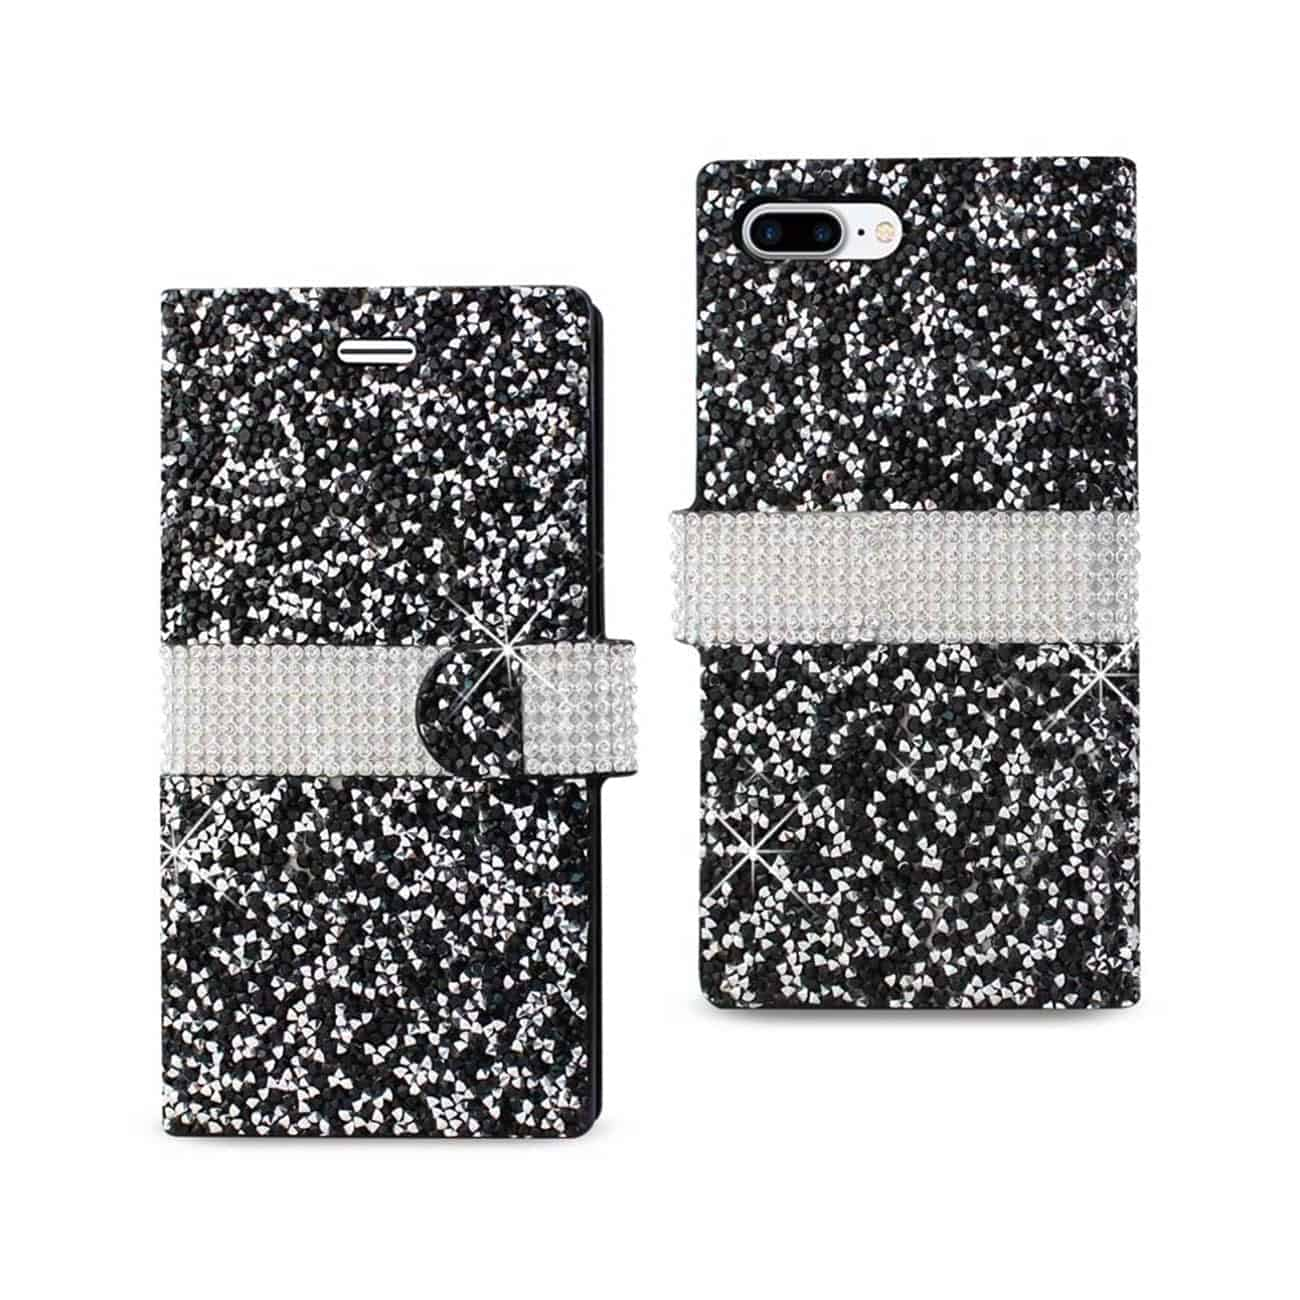 IPHONE 7 PLUS DIAMOND RHINESTONE WALLET CASE IN BLACK